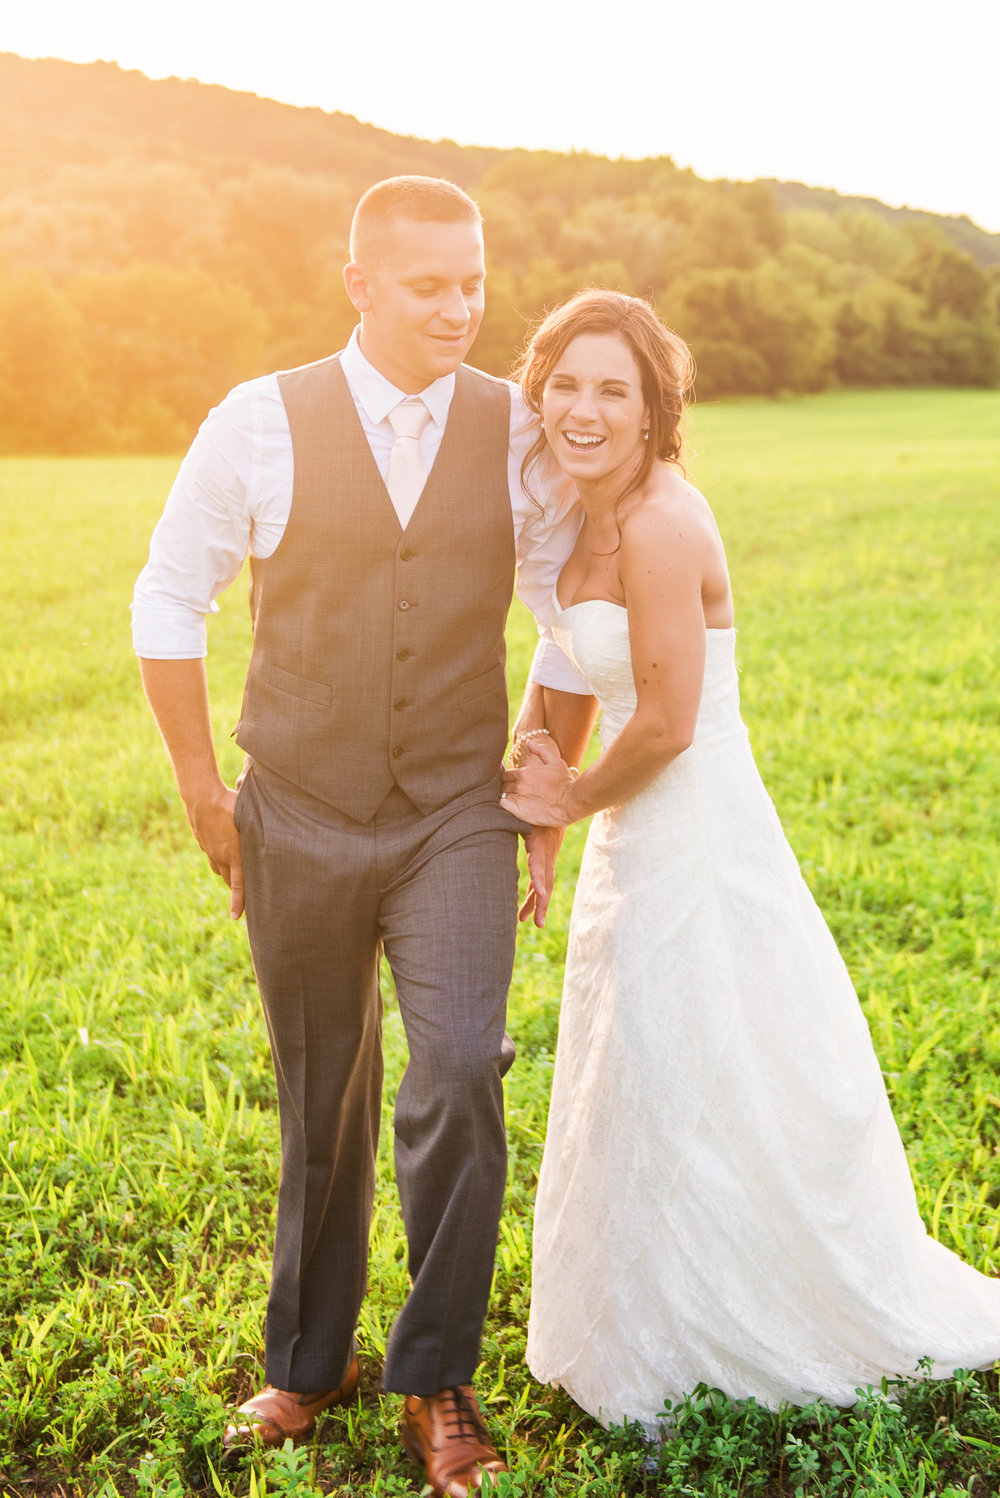 Wolf_Oak_Acres_Central_NY_Wedding_JILL_STUDIO_Rochester_NY_Photographer_DSC_5769.jpg